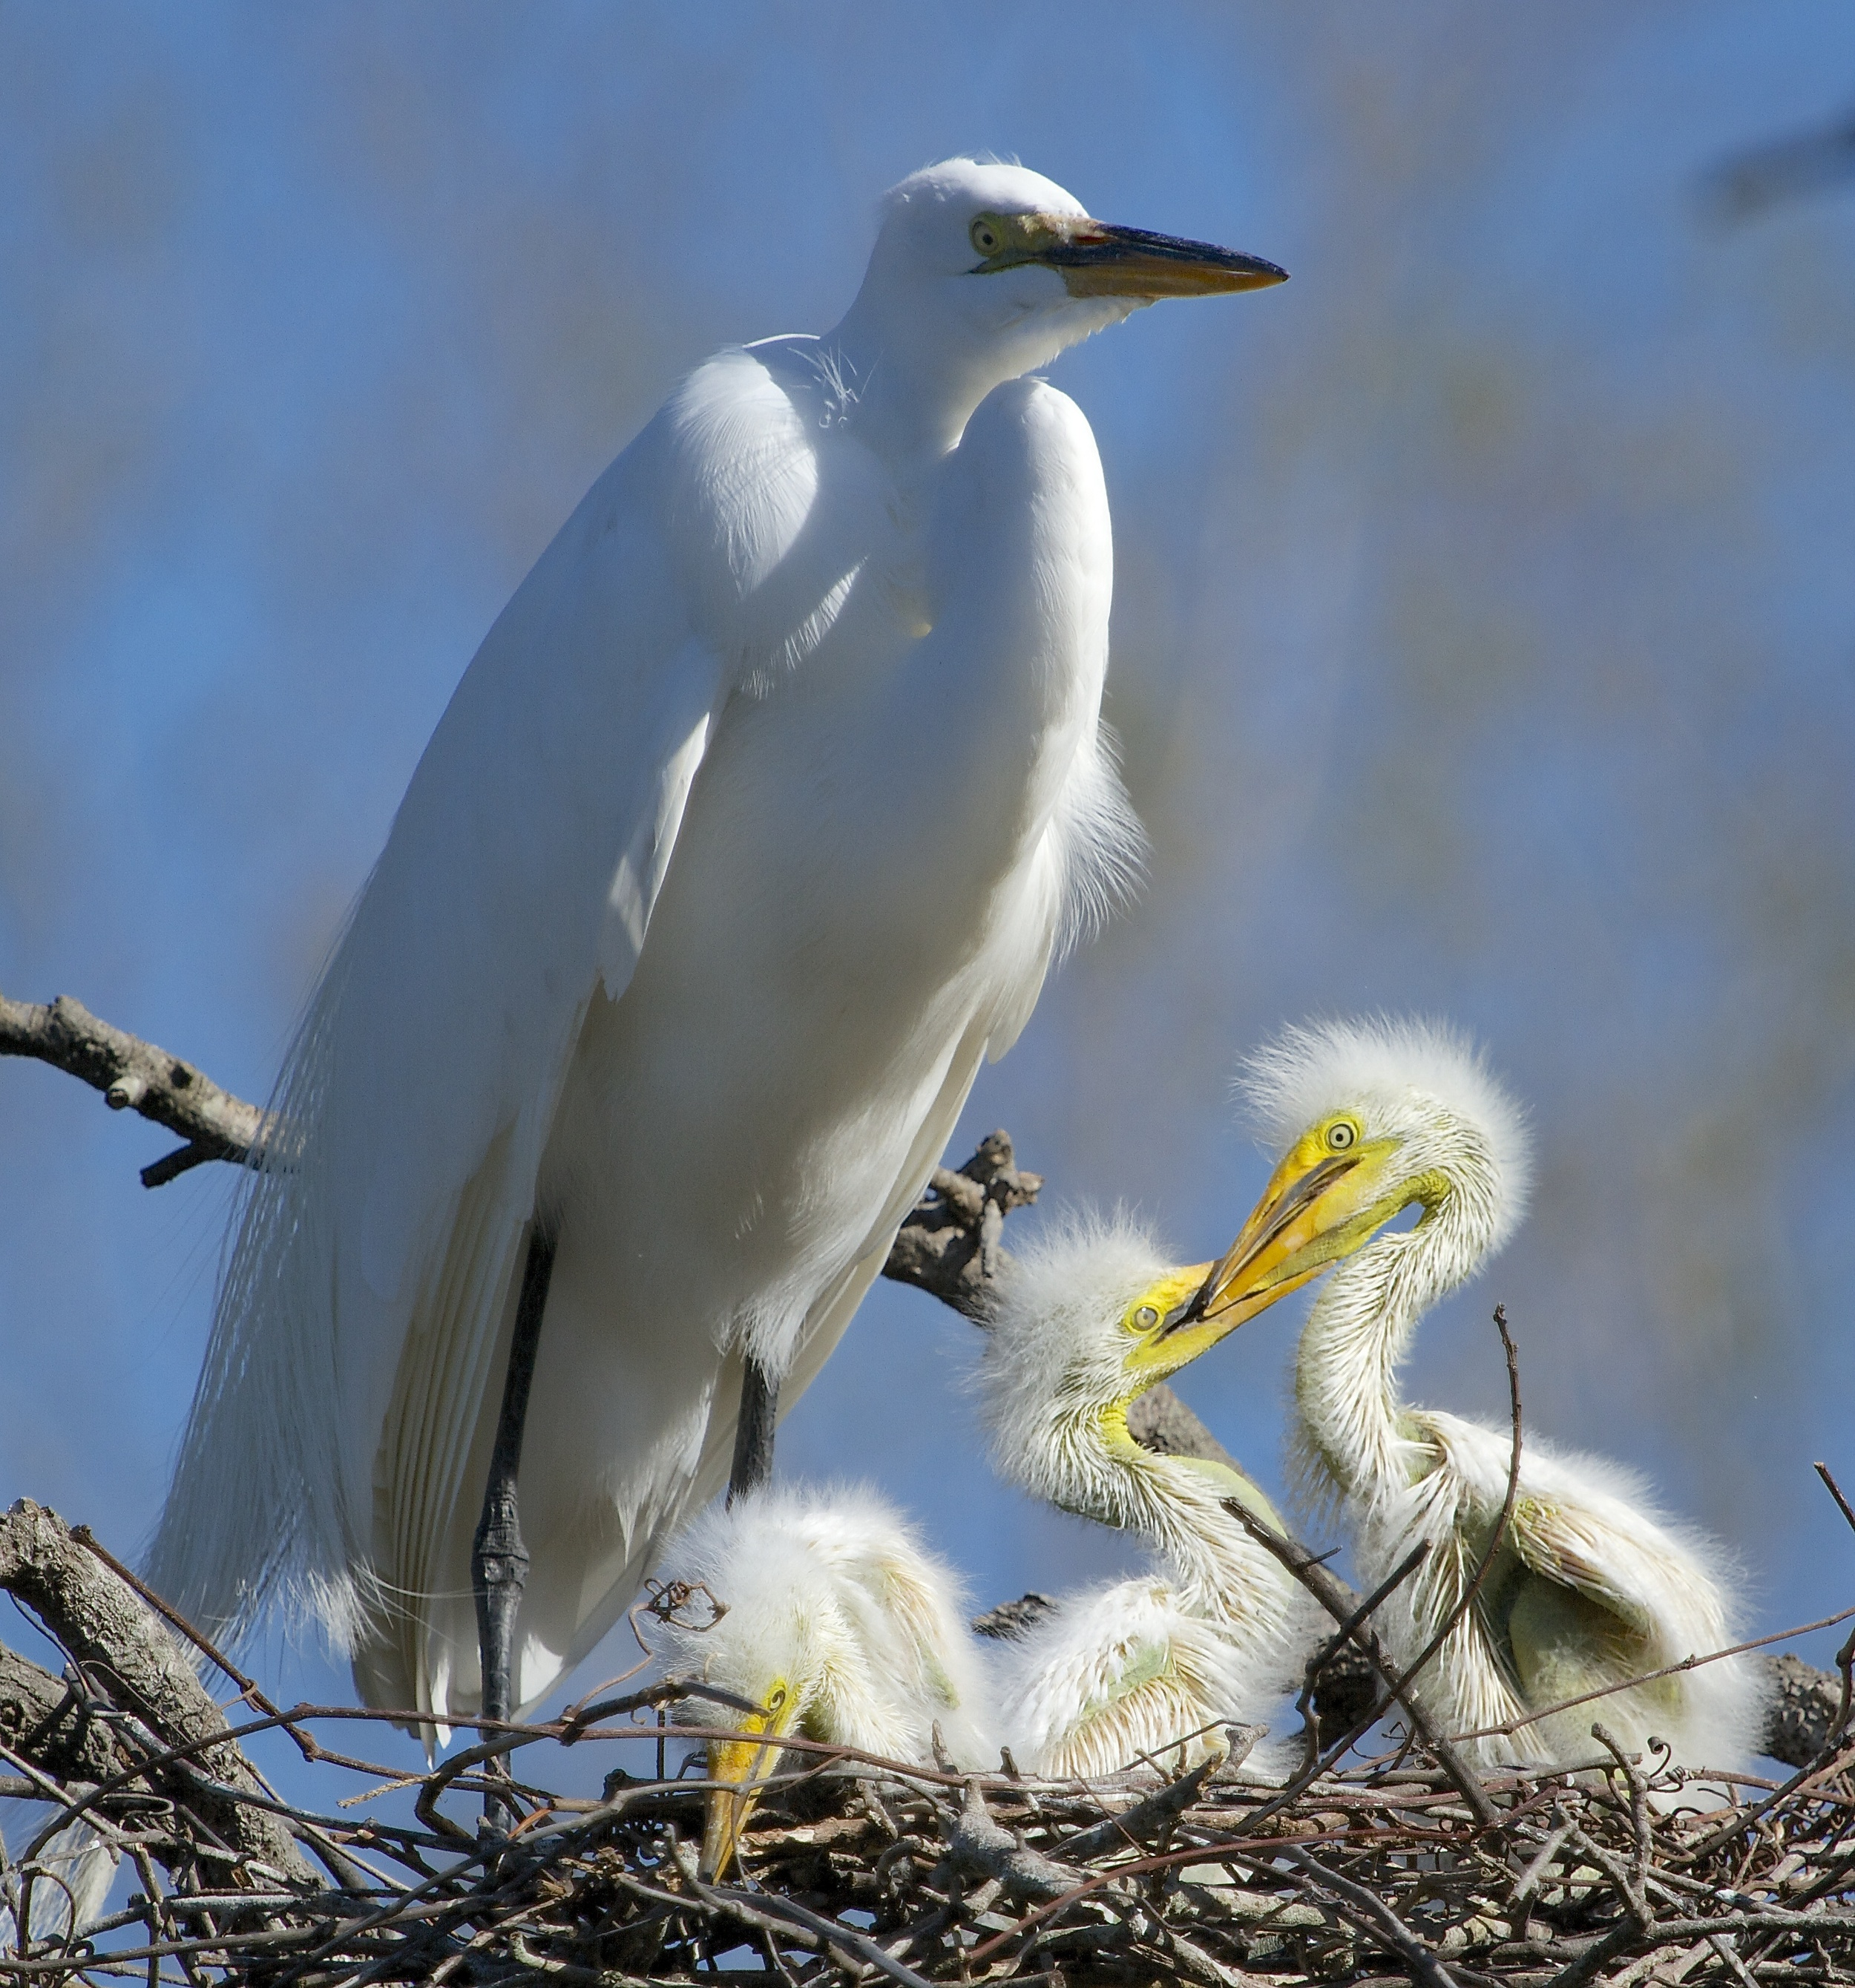 The nest is built just in time for three new arrivals!